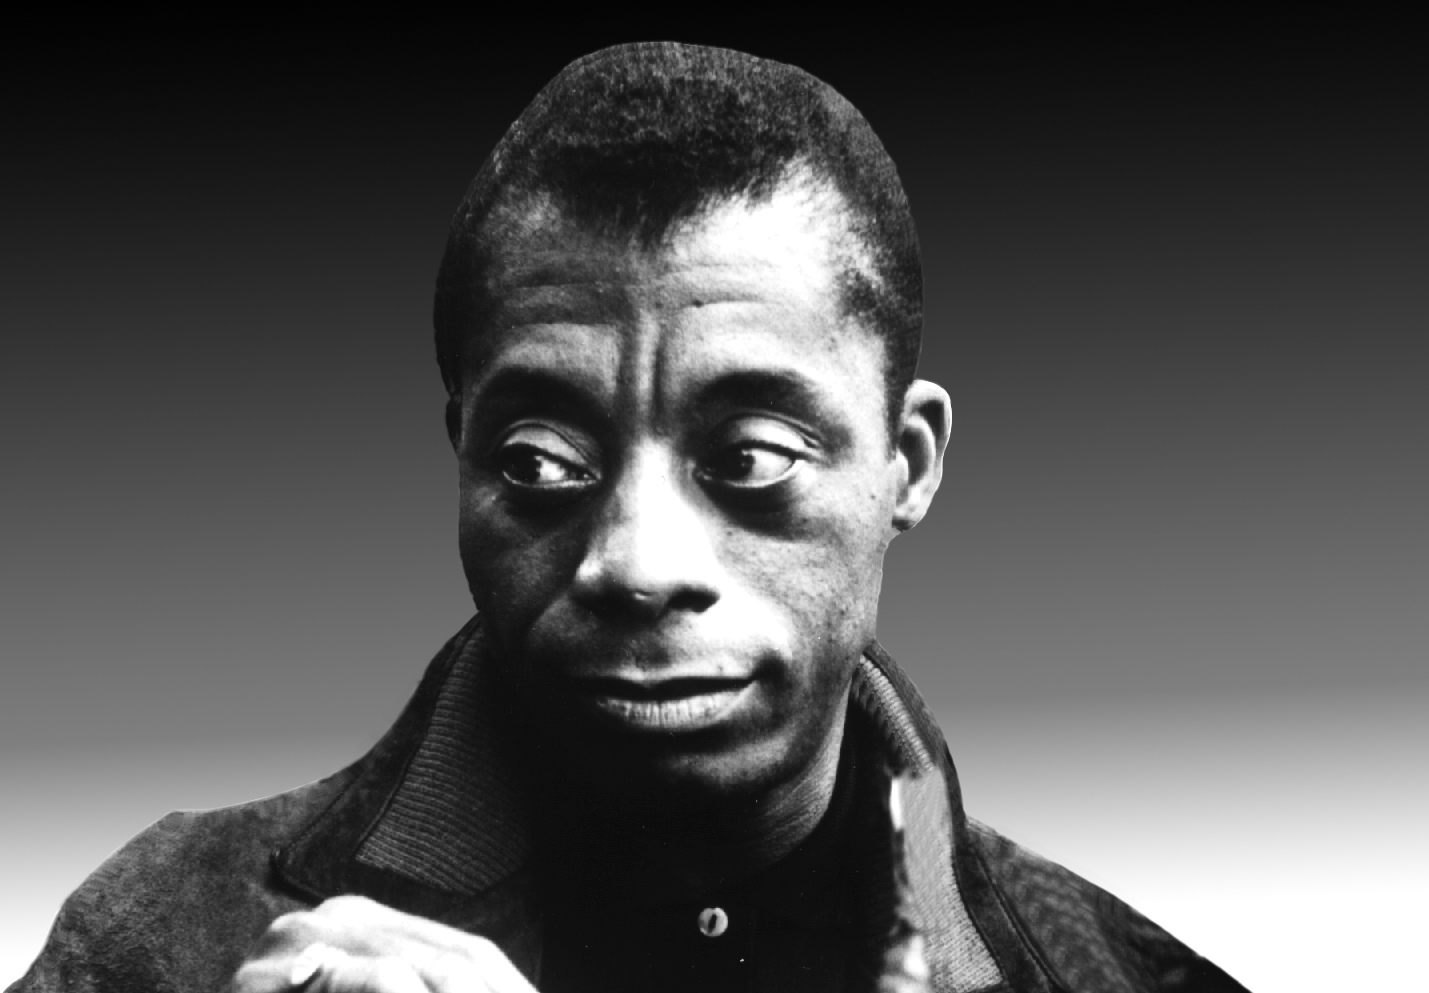 james baldwin essay on black english Lancelot chin engl 1302 september 17, 2014 essay 1: notably one of the 20th century's greatest writer's james baldwin was a very insightful, iconic and reflective african american essay writer, playwright, and novelist, exploring the black experience in america also became an important spokesman of the civil rights movement.